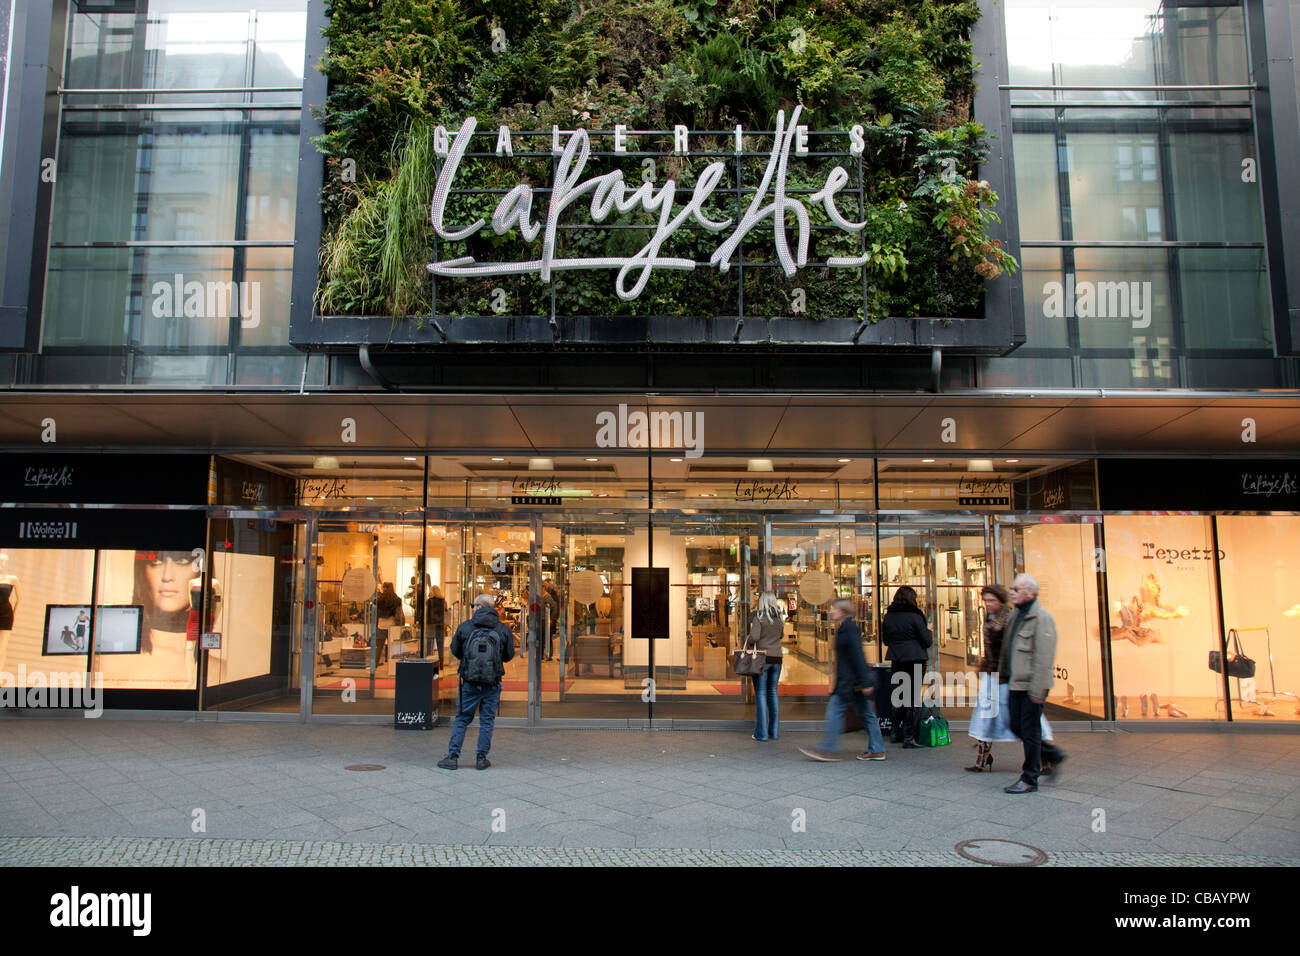 Galeries Lafayette Berlin High Resolution Stock Photography and ...